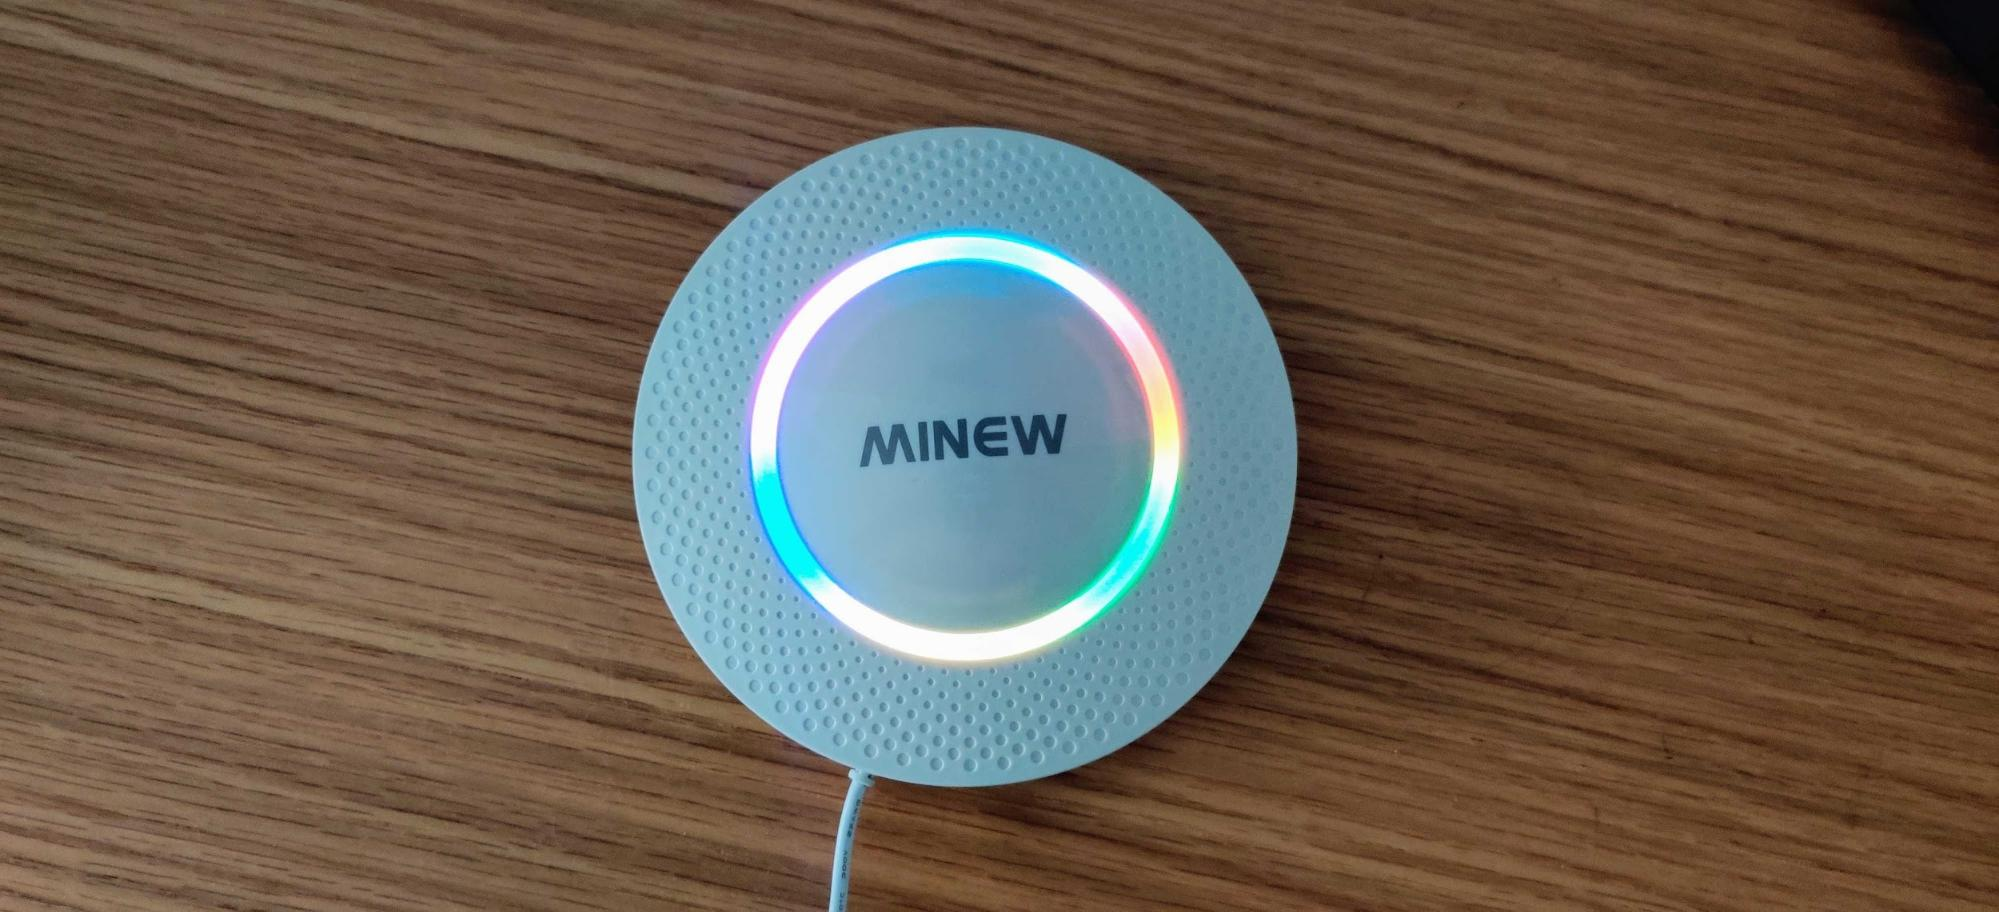 Minew G1 Bluetooth to Wifi gateway router